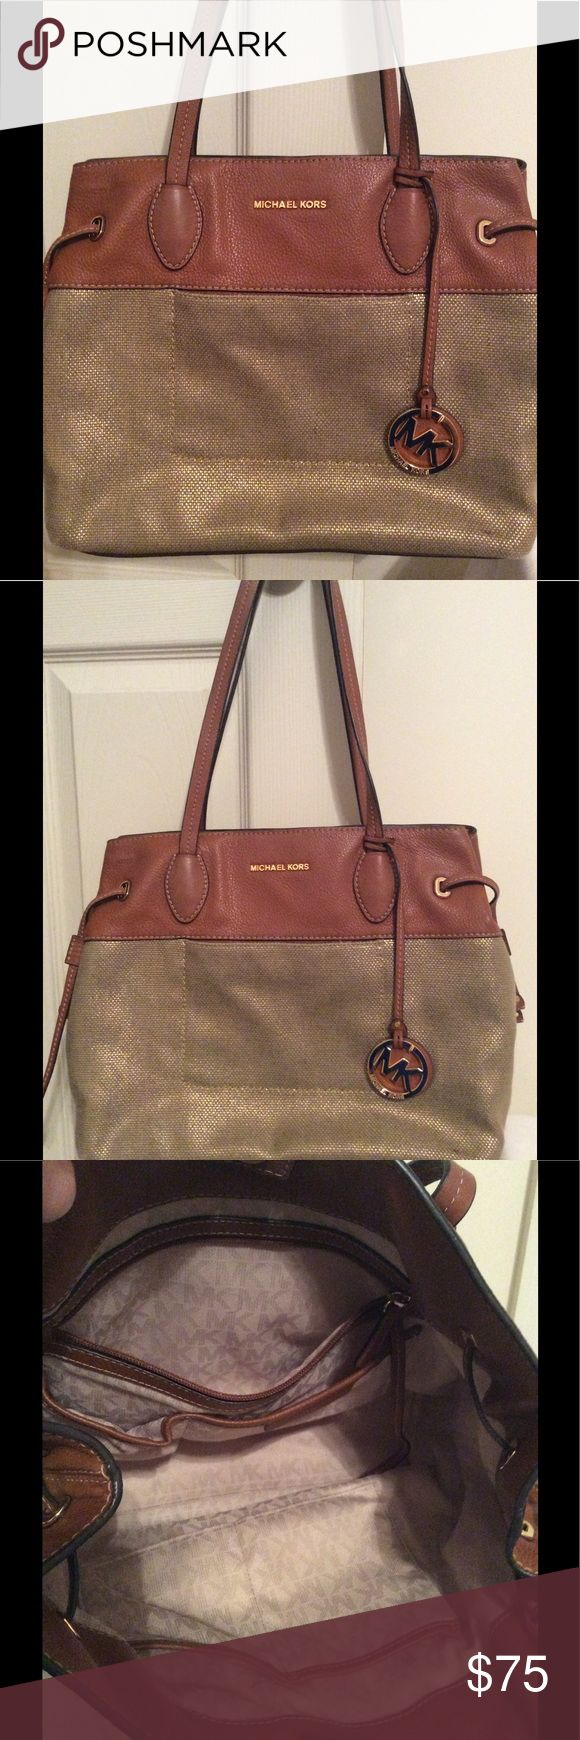 """Michael Kors Purse Michael Kors purse in great condition, camel color leather top and straps, gold woven fabric at lower portion, snap pocket at front, zipper pocket and 4 open pockets inside. Small stain shown above one of inside pockets shown in 4th picture.  Approx. 14""""X11"""". Michael Kors Bags"""